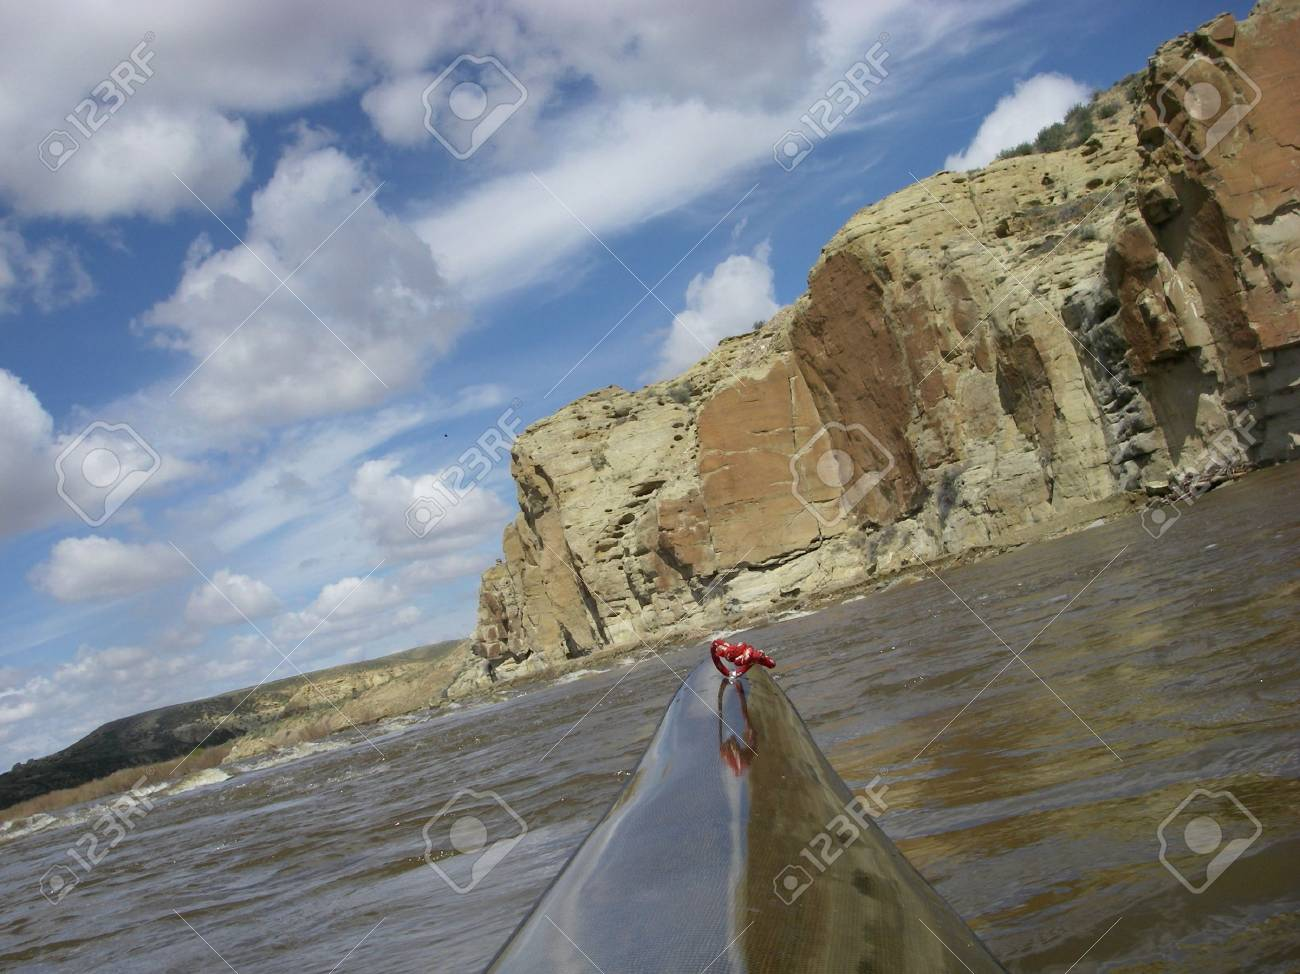 view from a bow of racing kayak on the North Platte River in Wyoming Stock Photo - 3098906